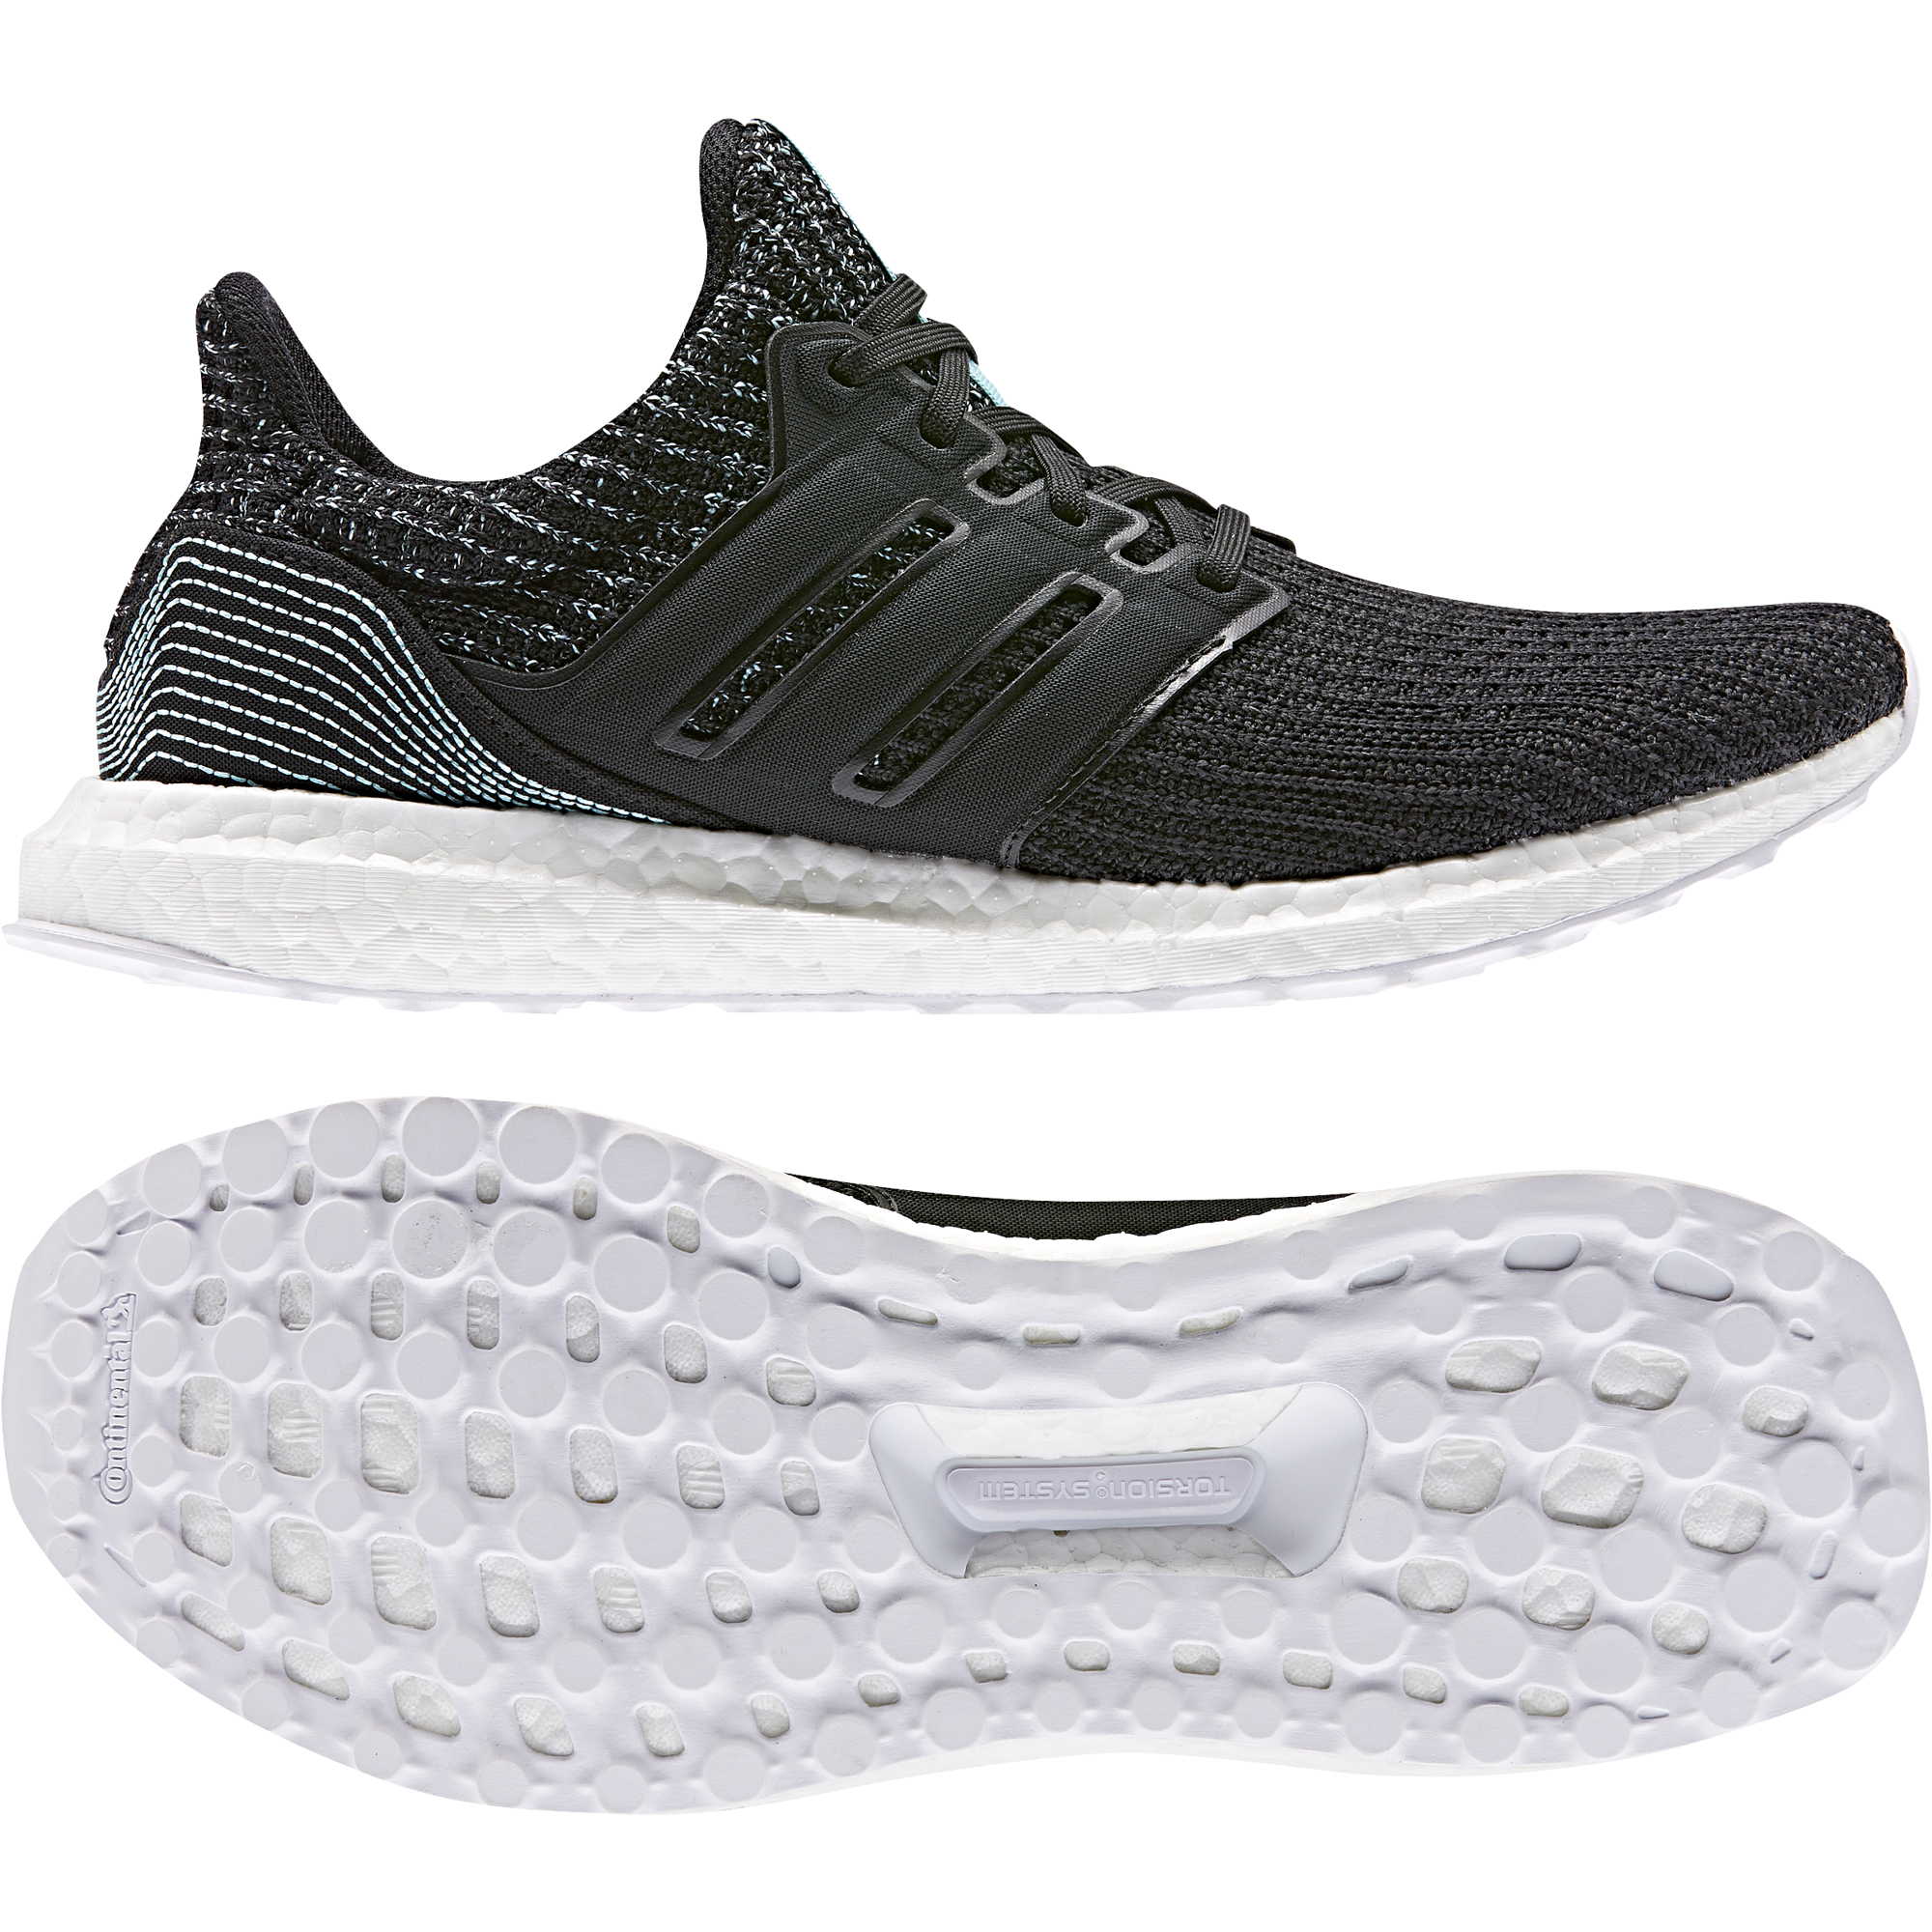 Parley Chaussures Ultraboost Adidas Chaussures Adidas L4A5Rj